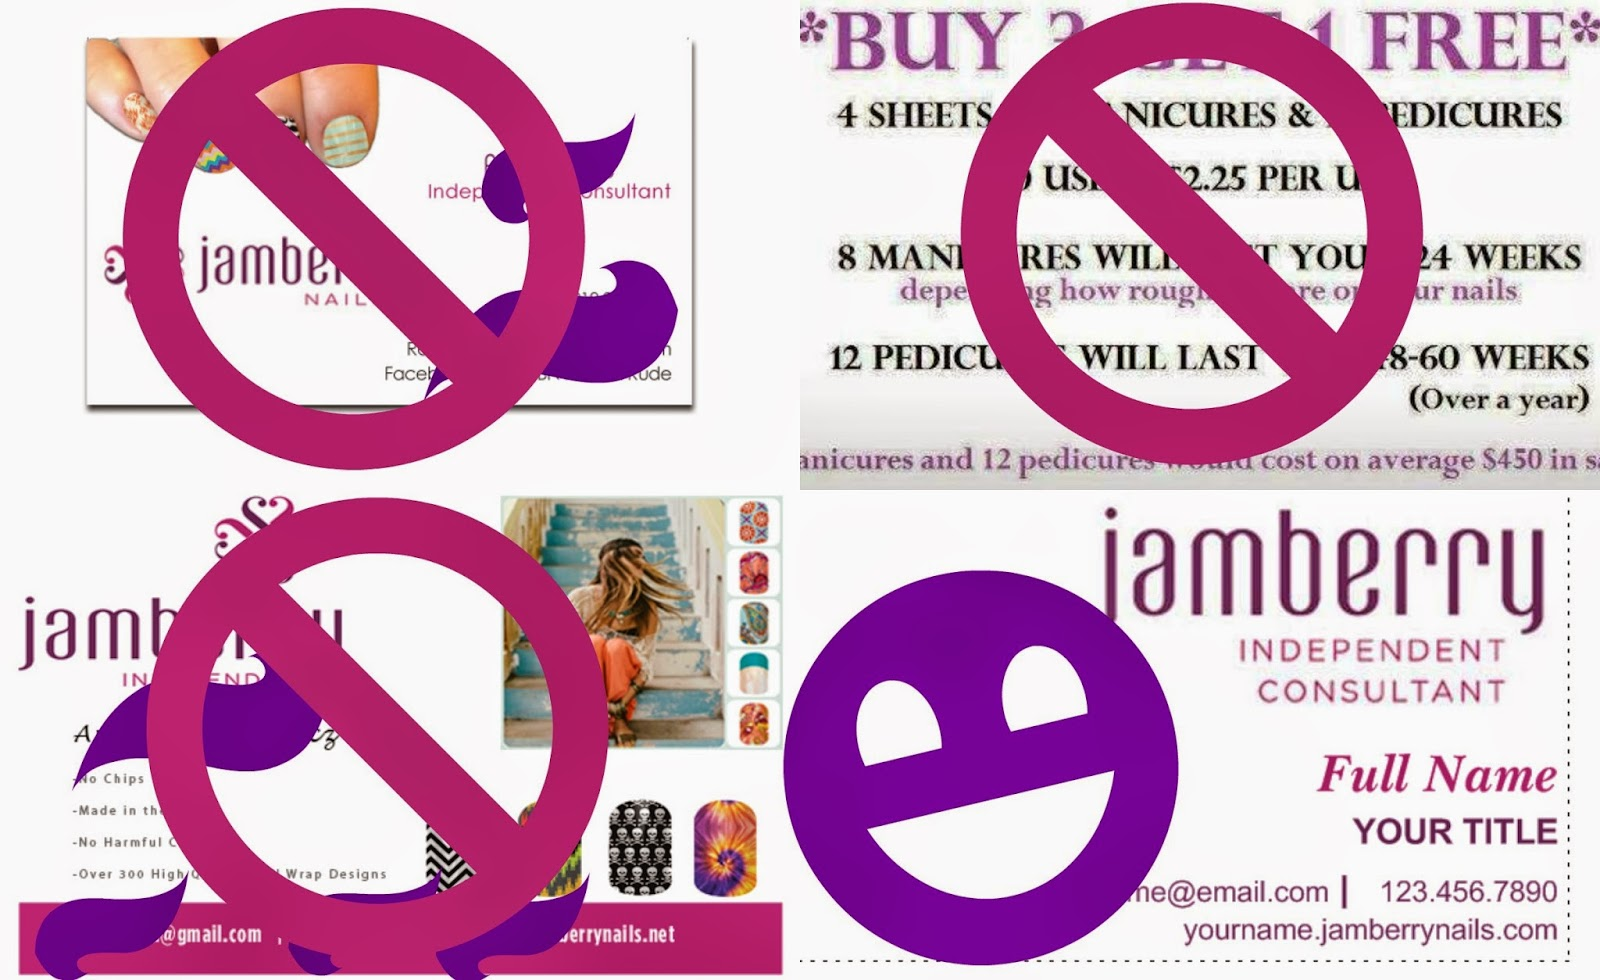 GLOW Girls : Jamberry Nails uses VistaPrint.com